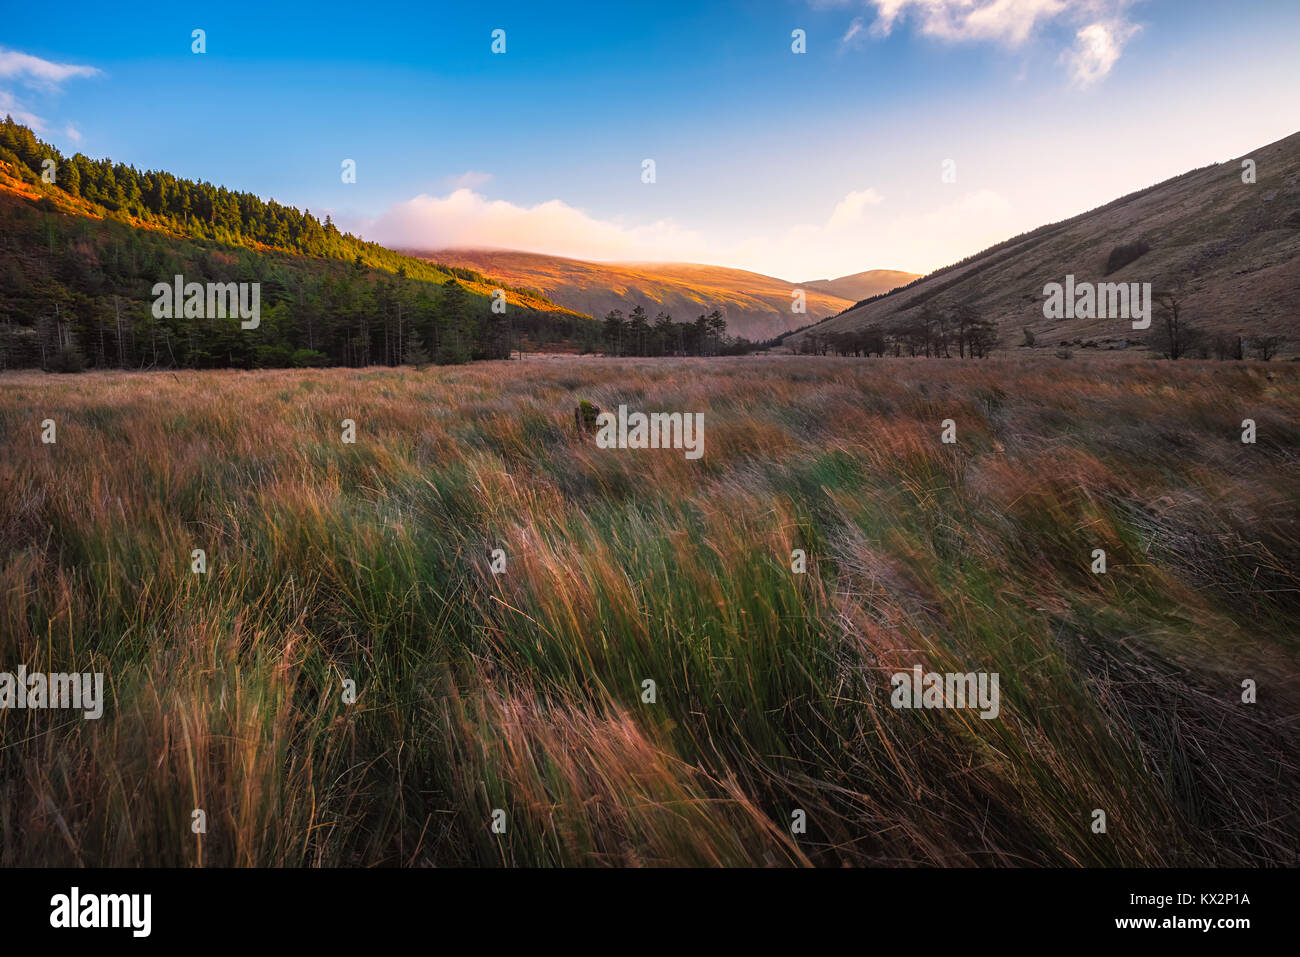 Landscape of Glenmalure in Wicklow Mountains - Ireland - Stock Image